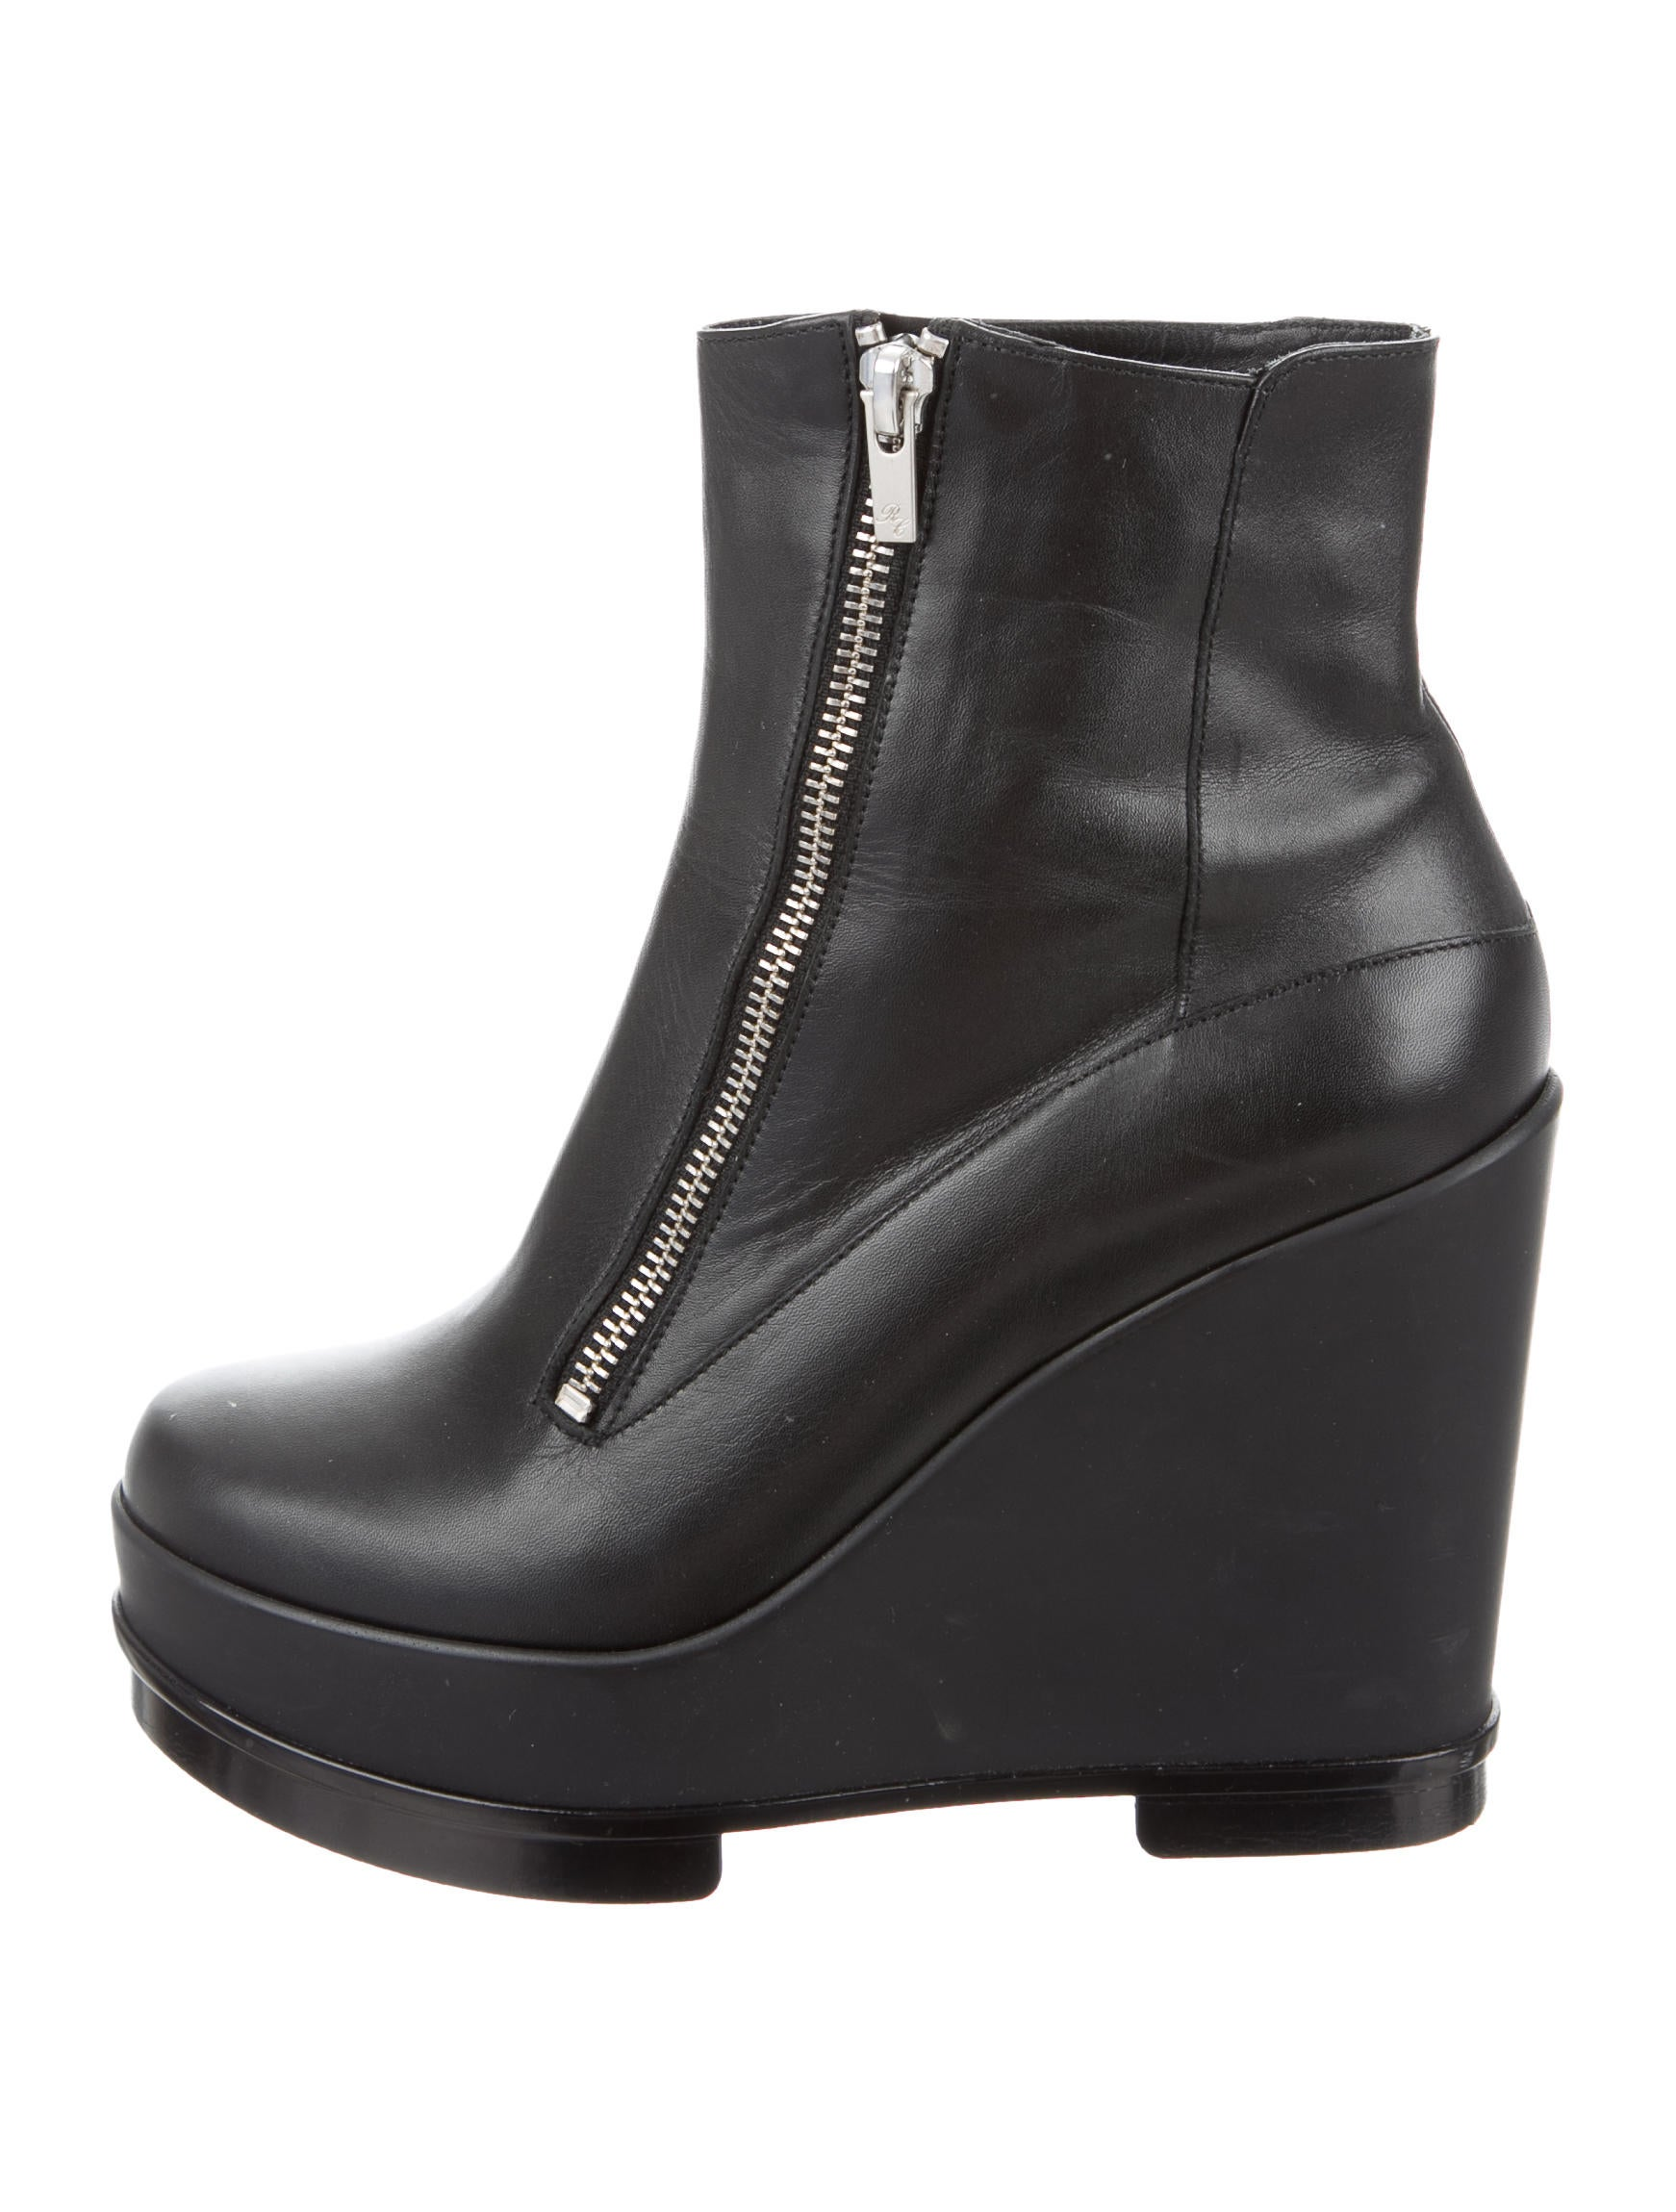 robert clergerie leather wedge ankle boots shoes